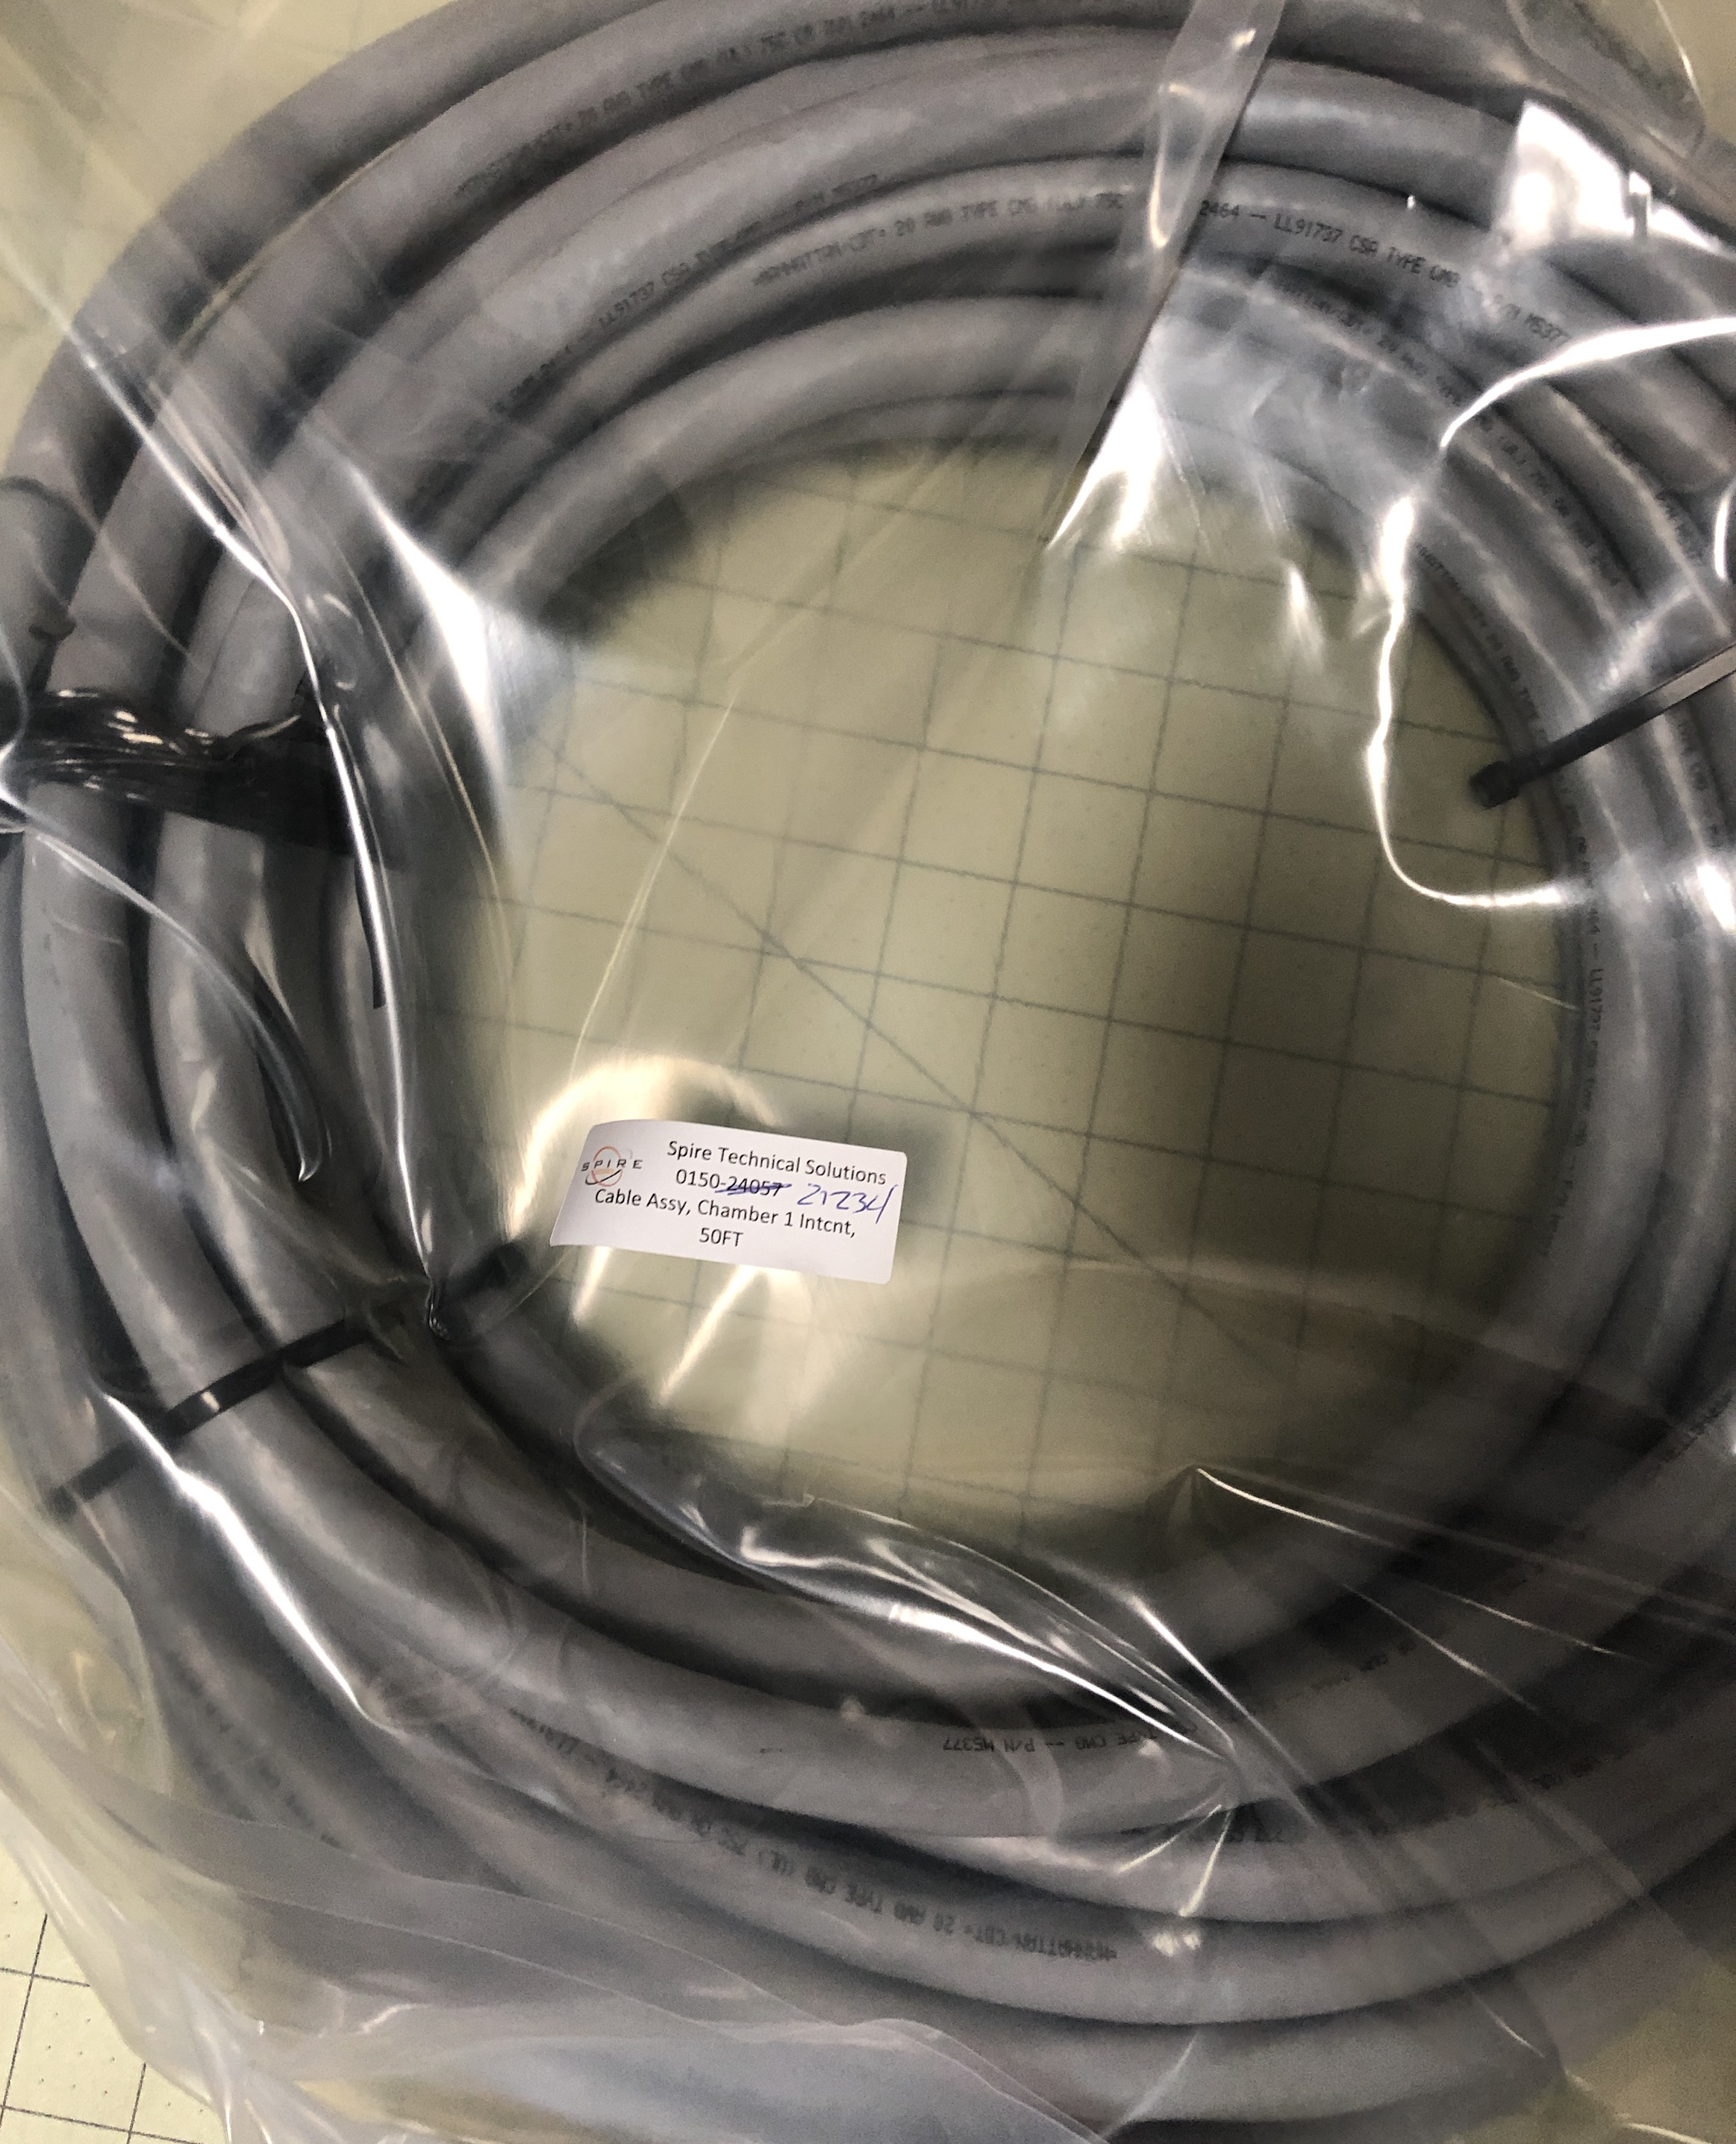 Cable Assy, Chamber 1 Intcnt, 50FT